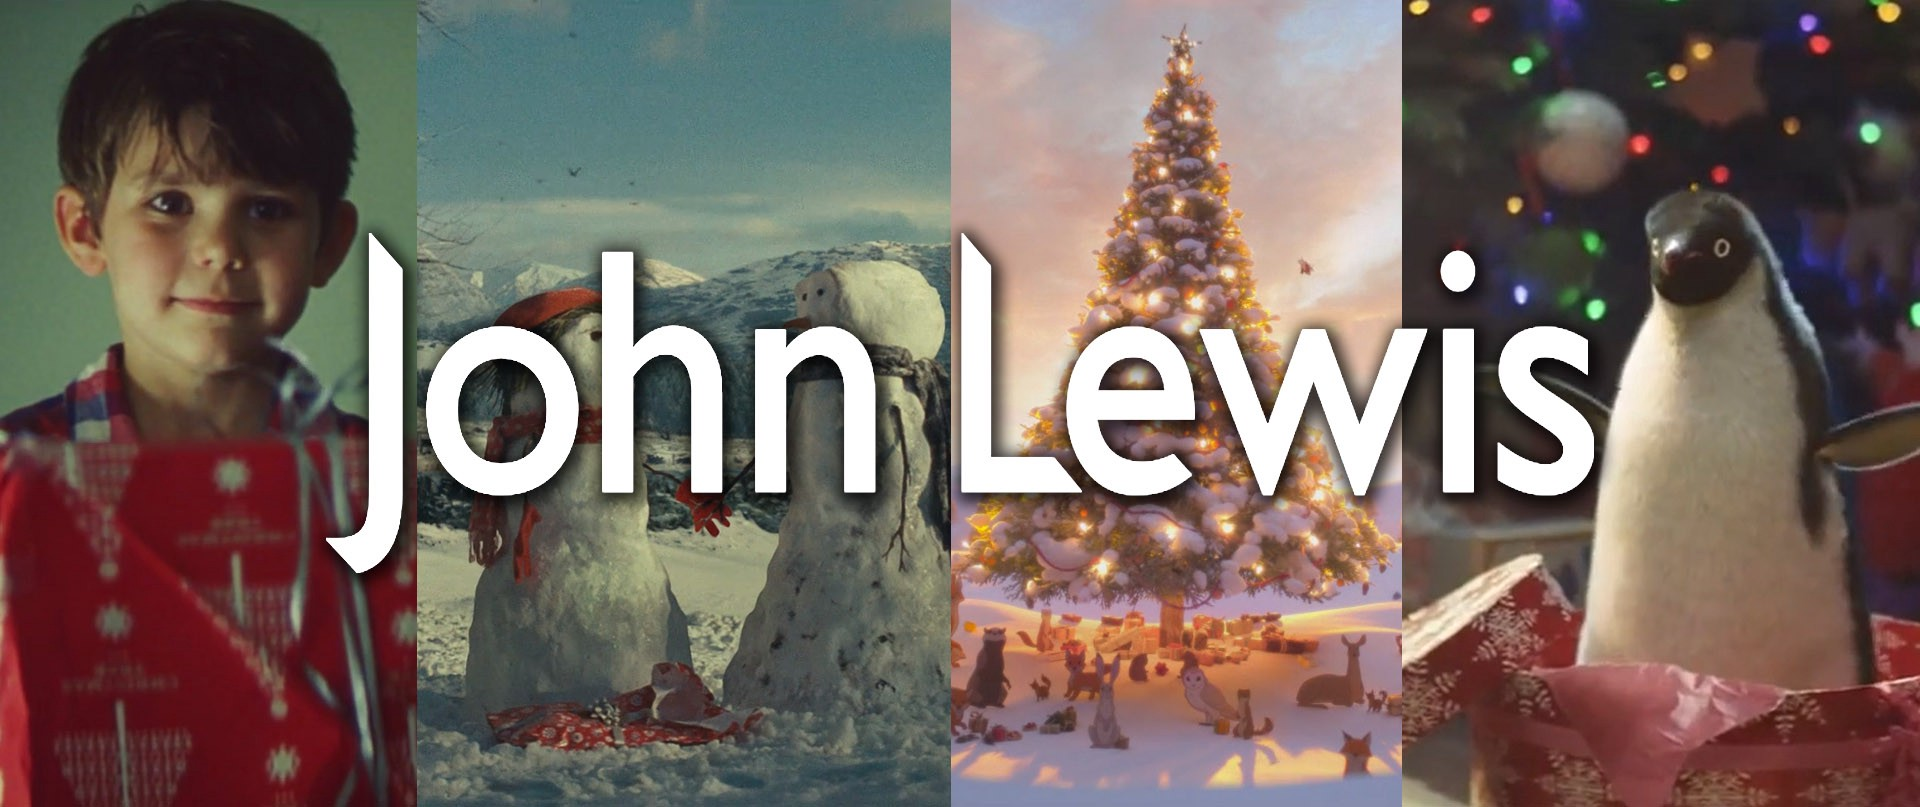 Social medai christmas campaign with John Lewis